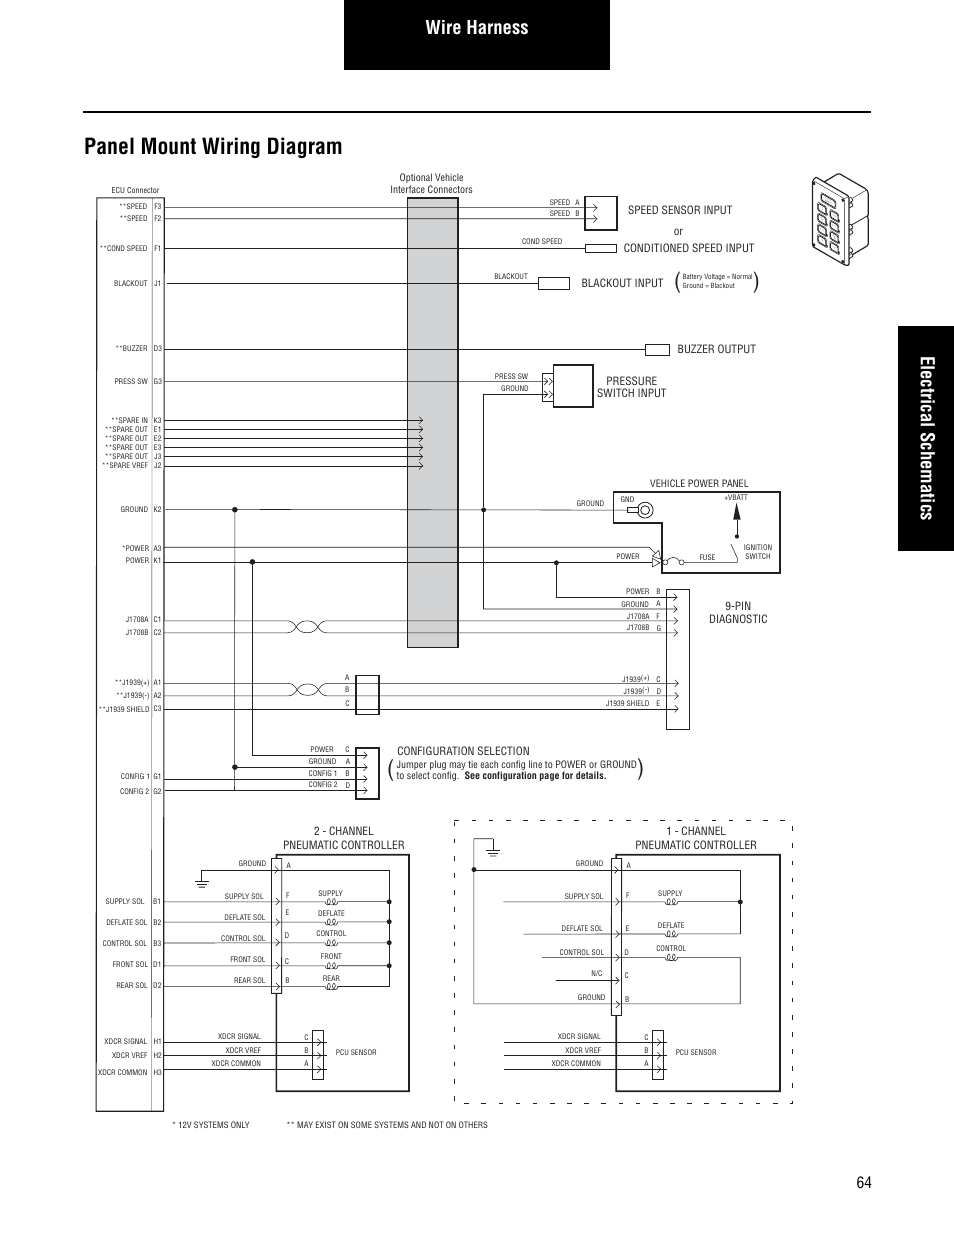 Panel Mount Wiring Diagram  Wire Harness Electrical